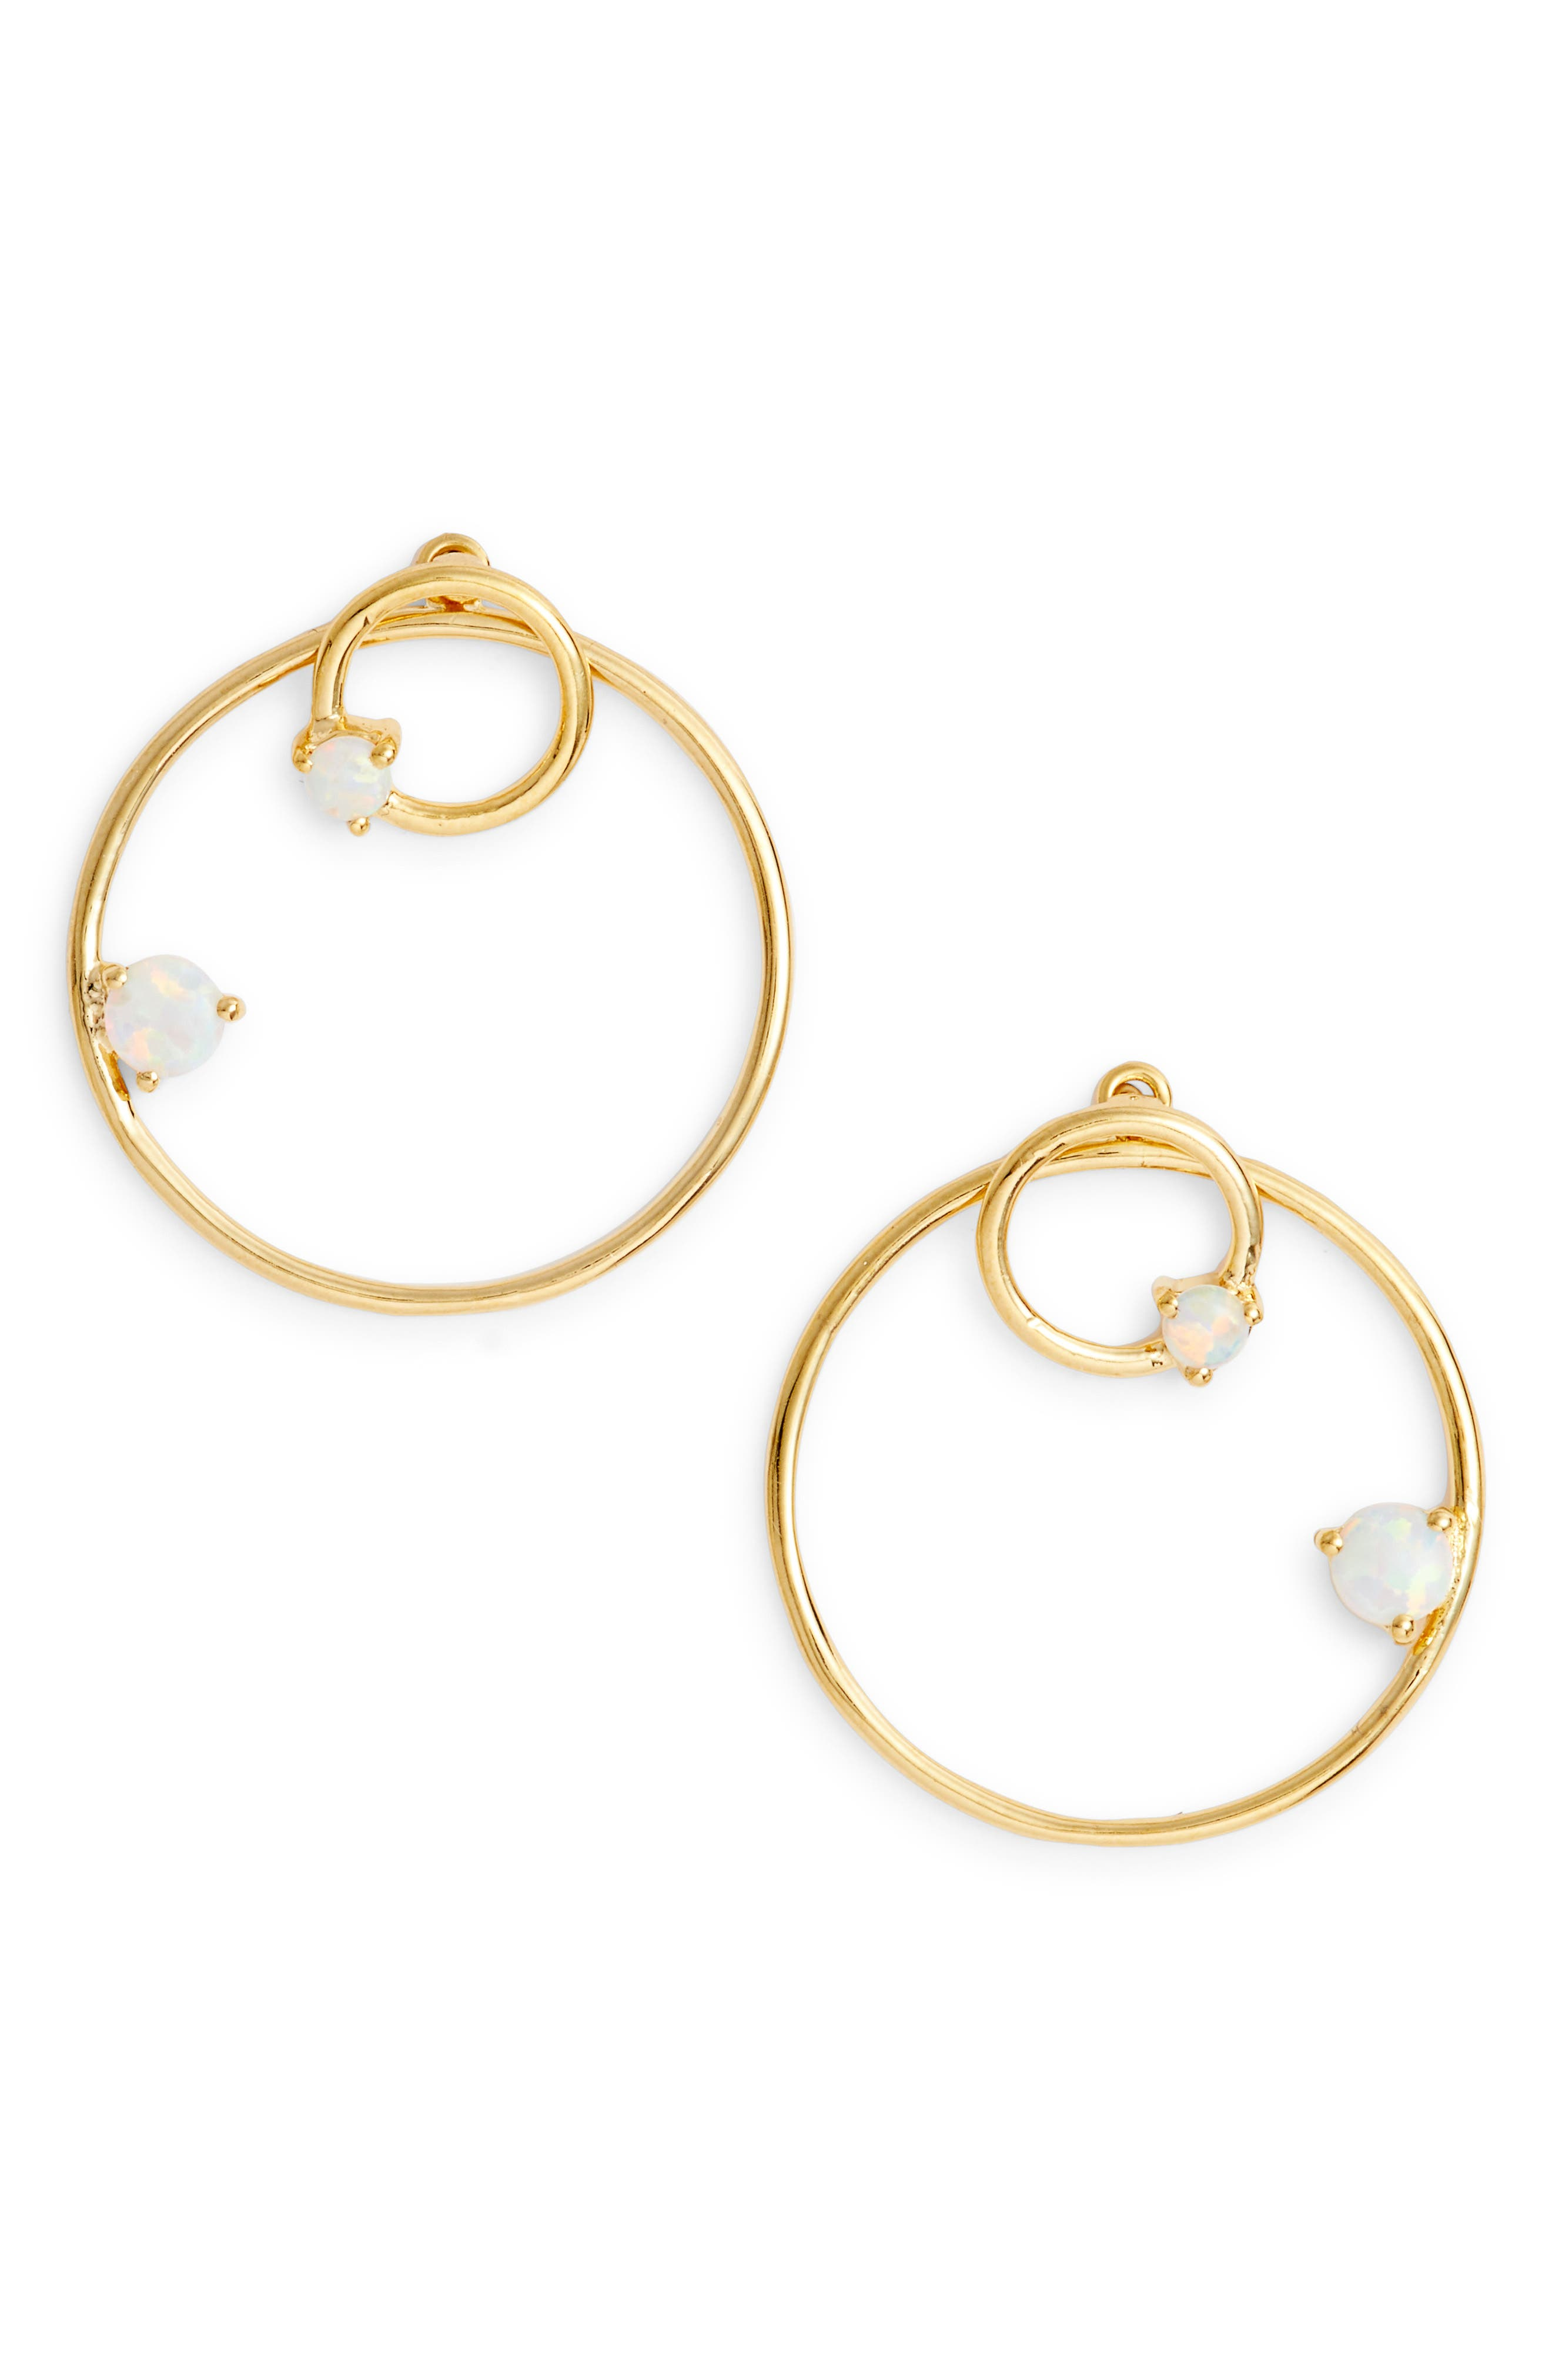 Sydney Double Open Ring Earrings,                         Main,                         color, Gold